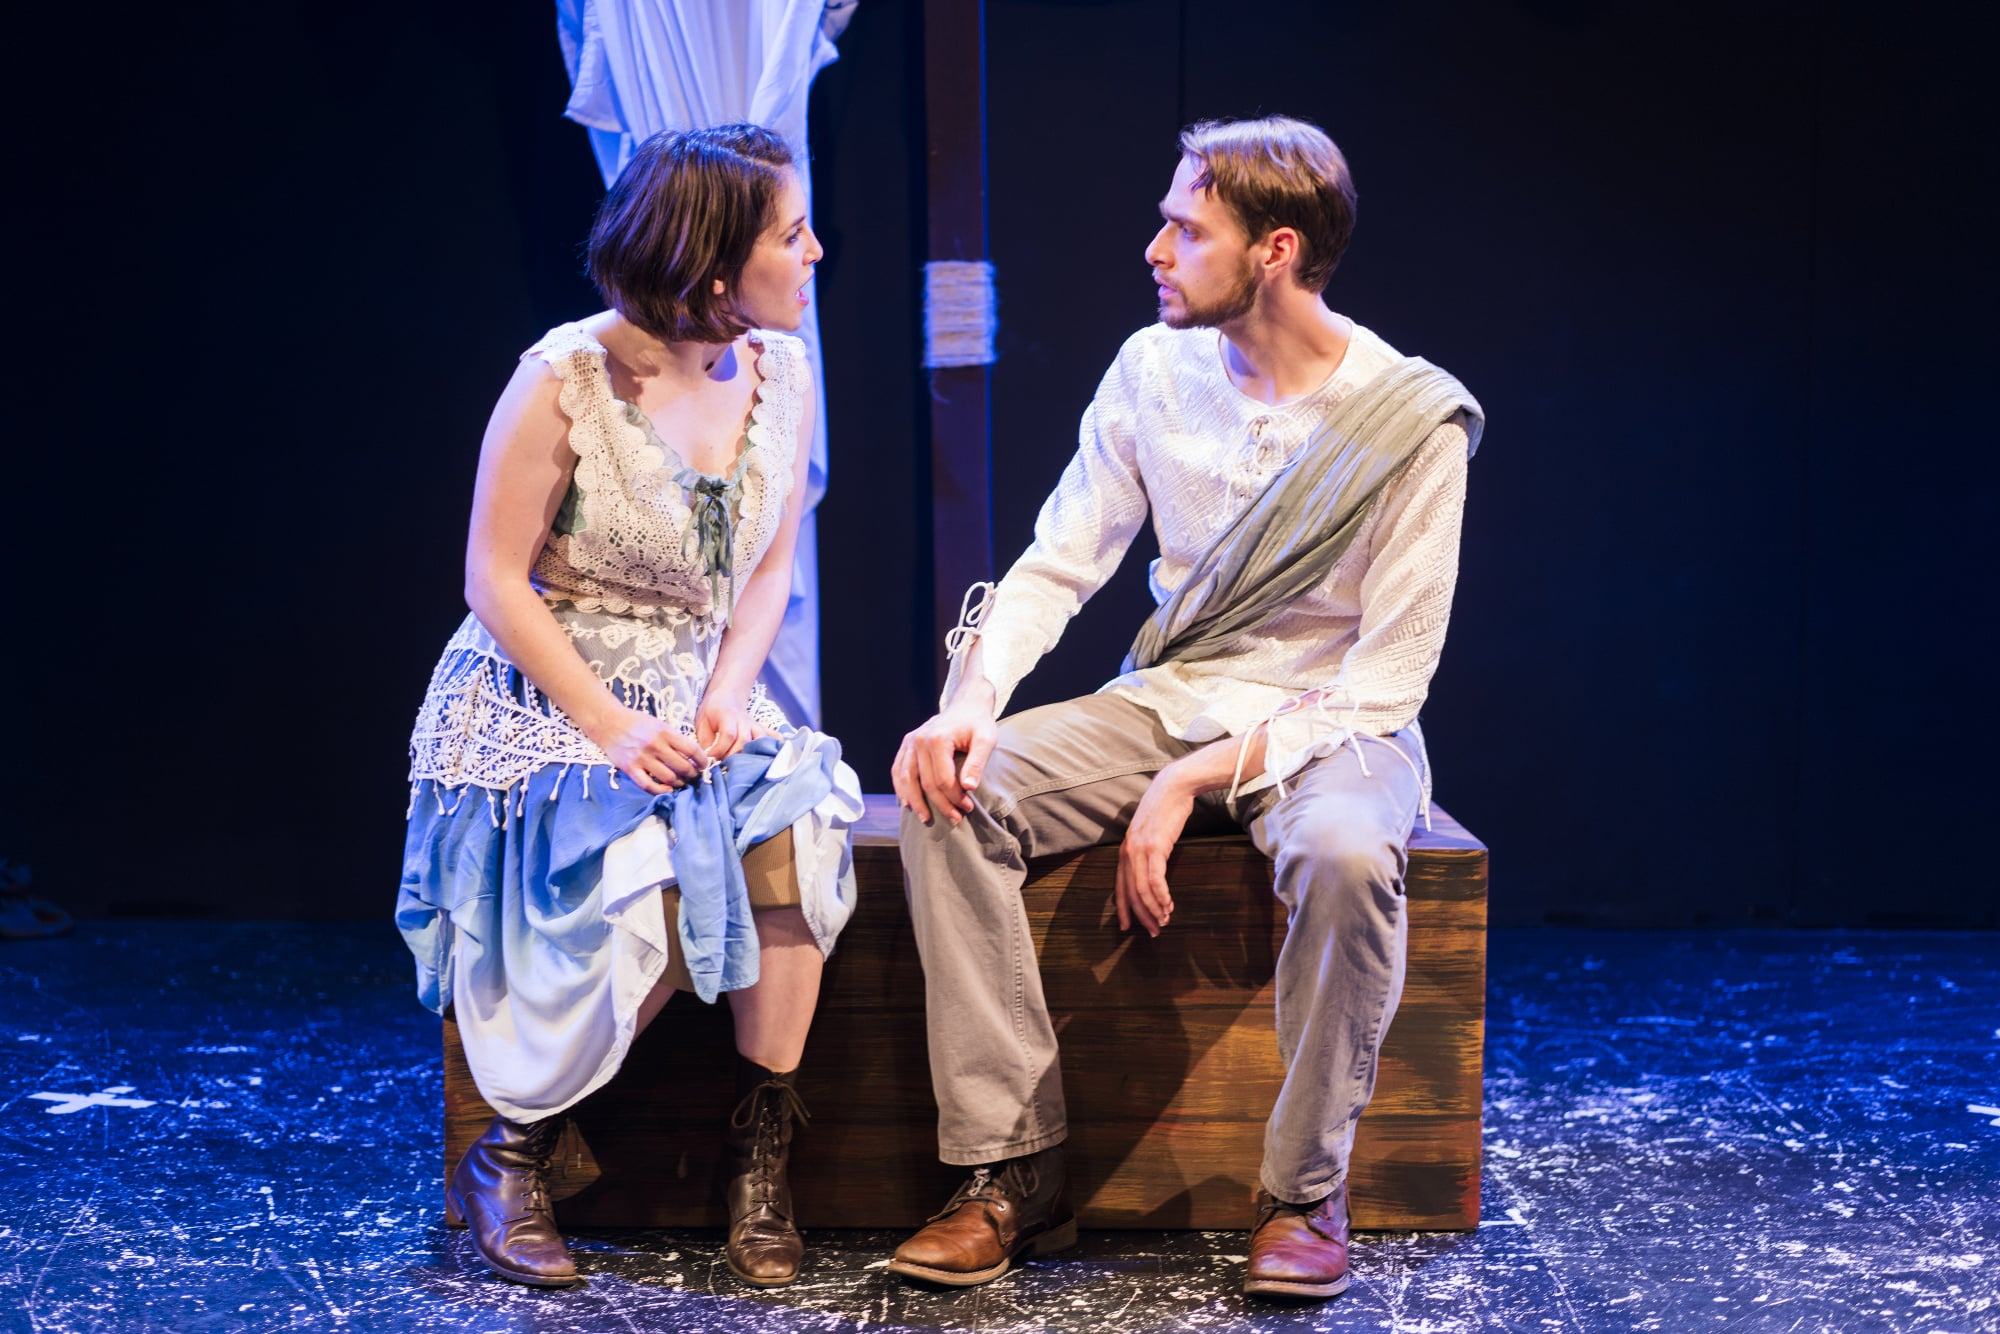 Jenna Berk and Grant Cloyd in We Happy Few's production of Pericles. Photo by Mark Williams Hoelscher.